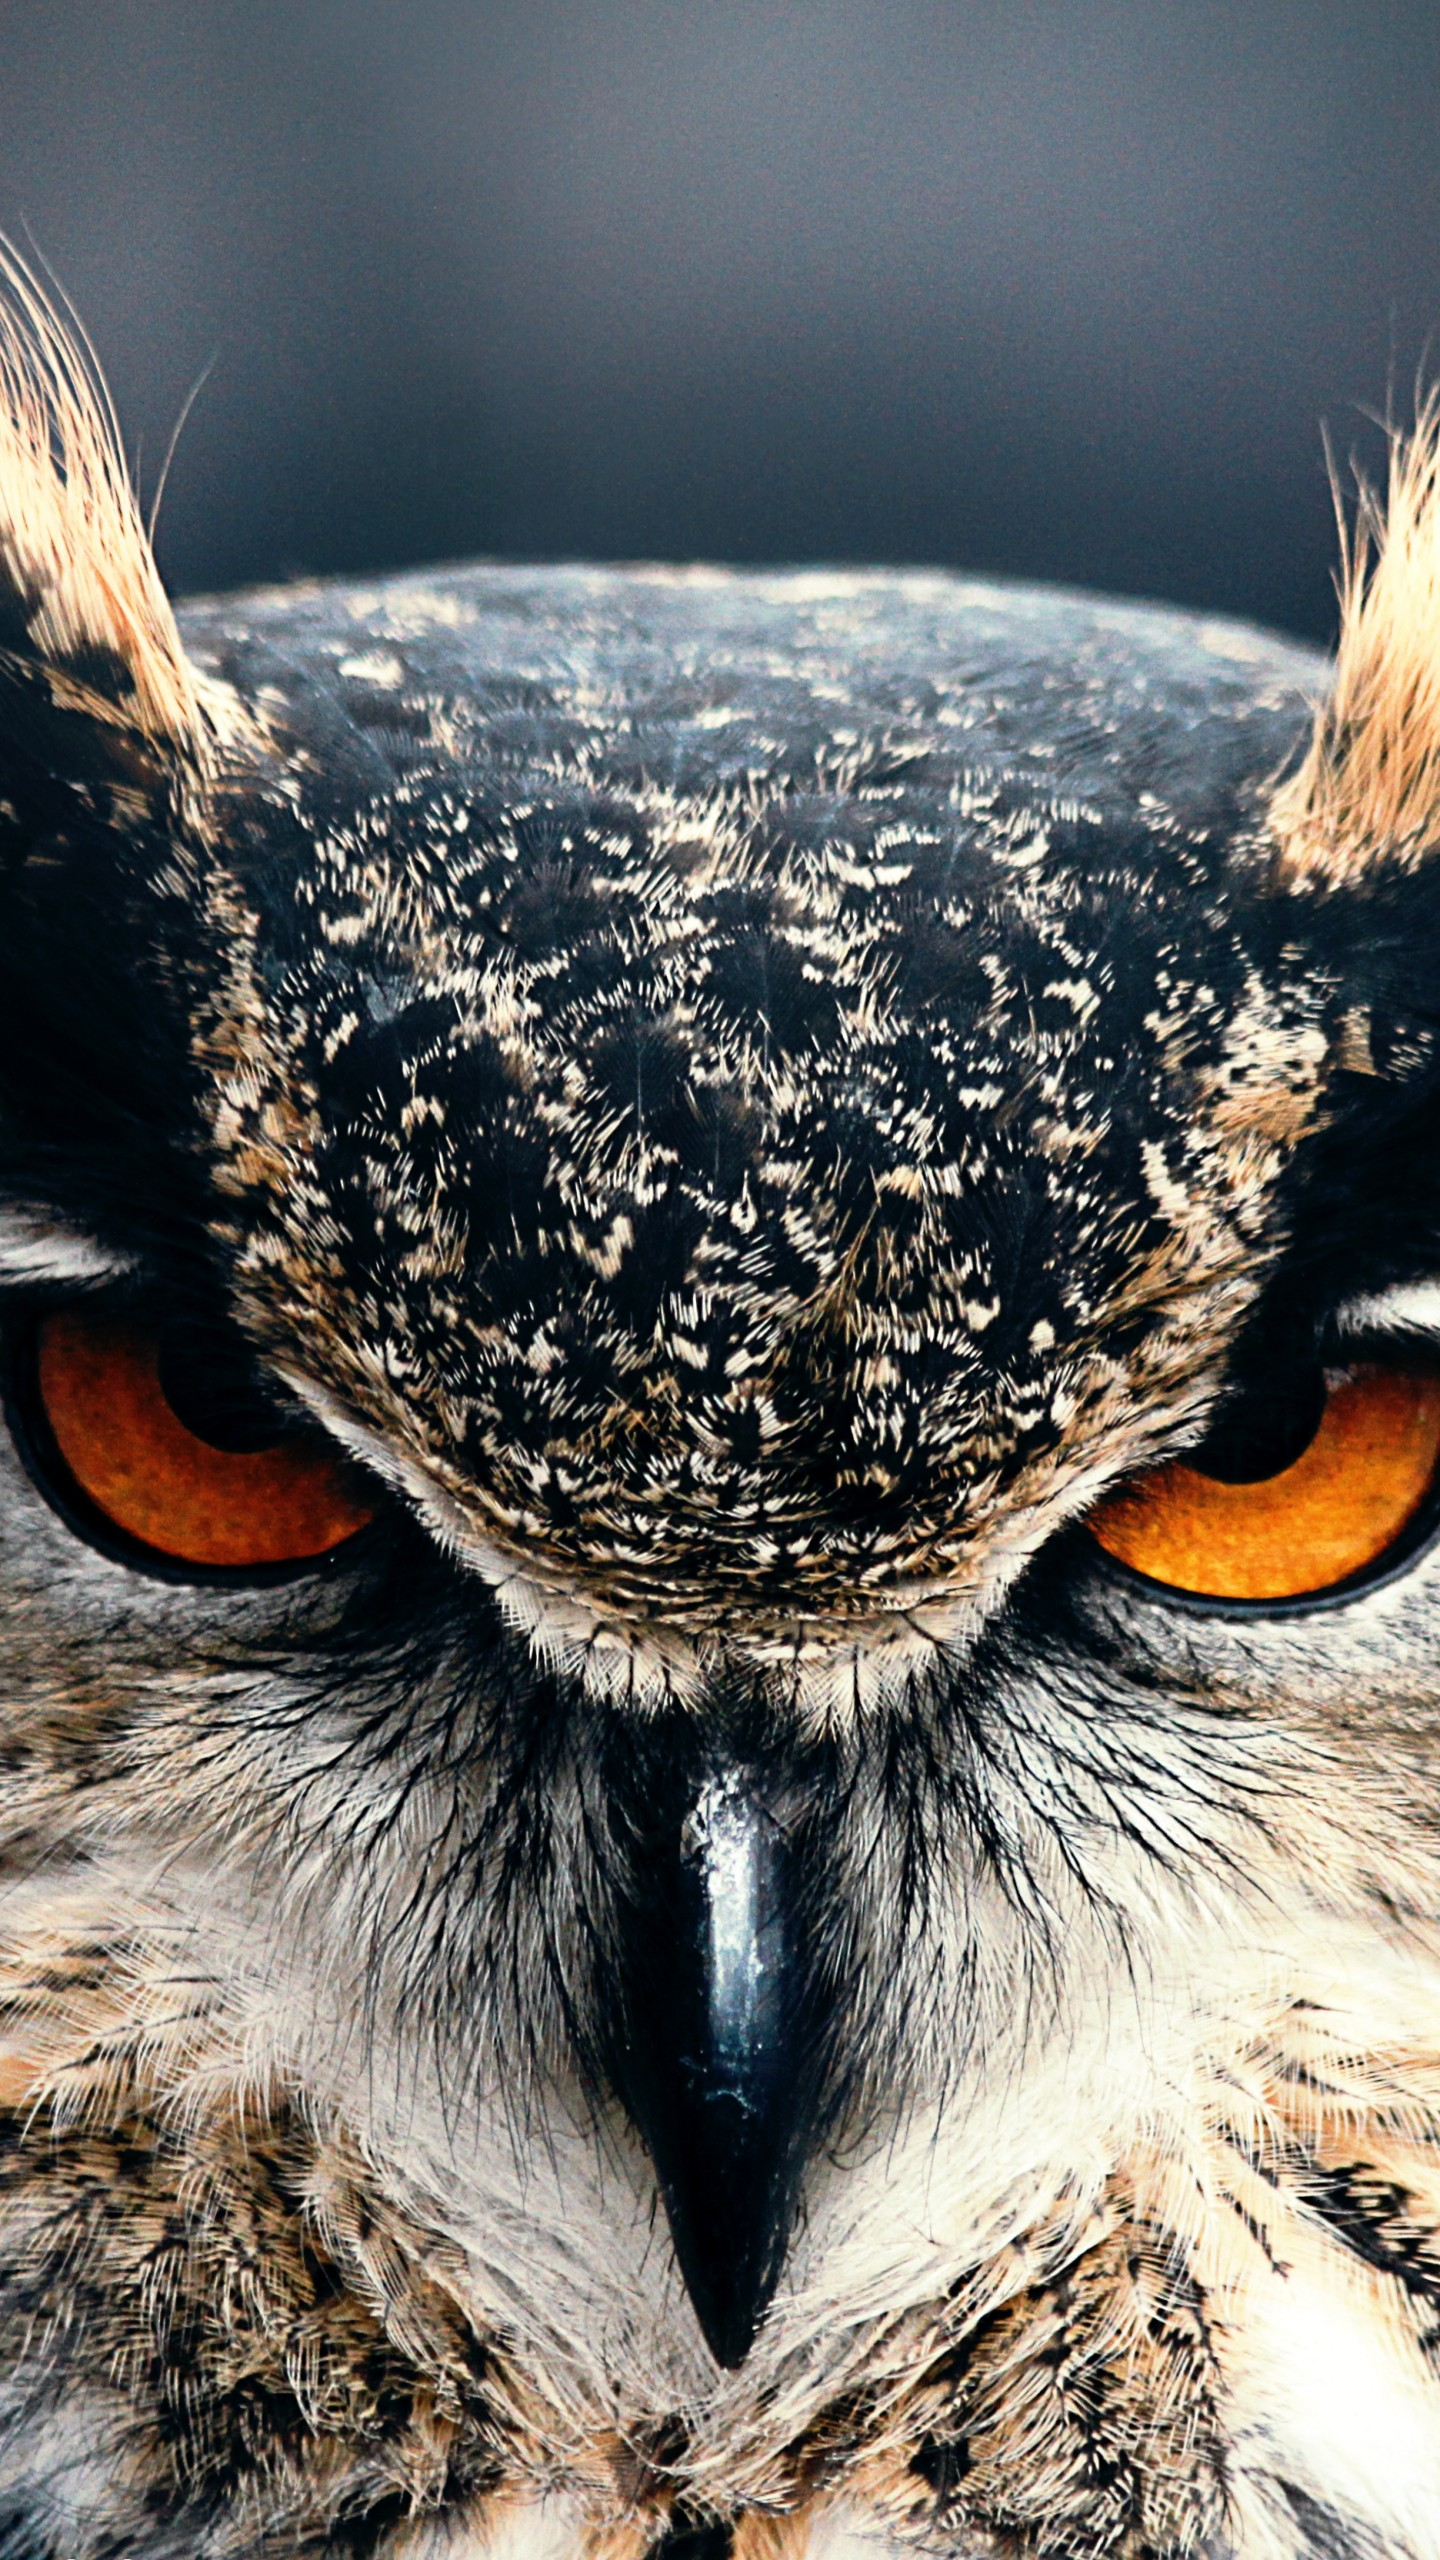 Wallpaper Owl 4k Hd Wallpaper Eyes Wild Nature Gray